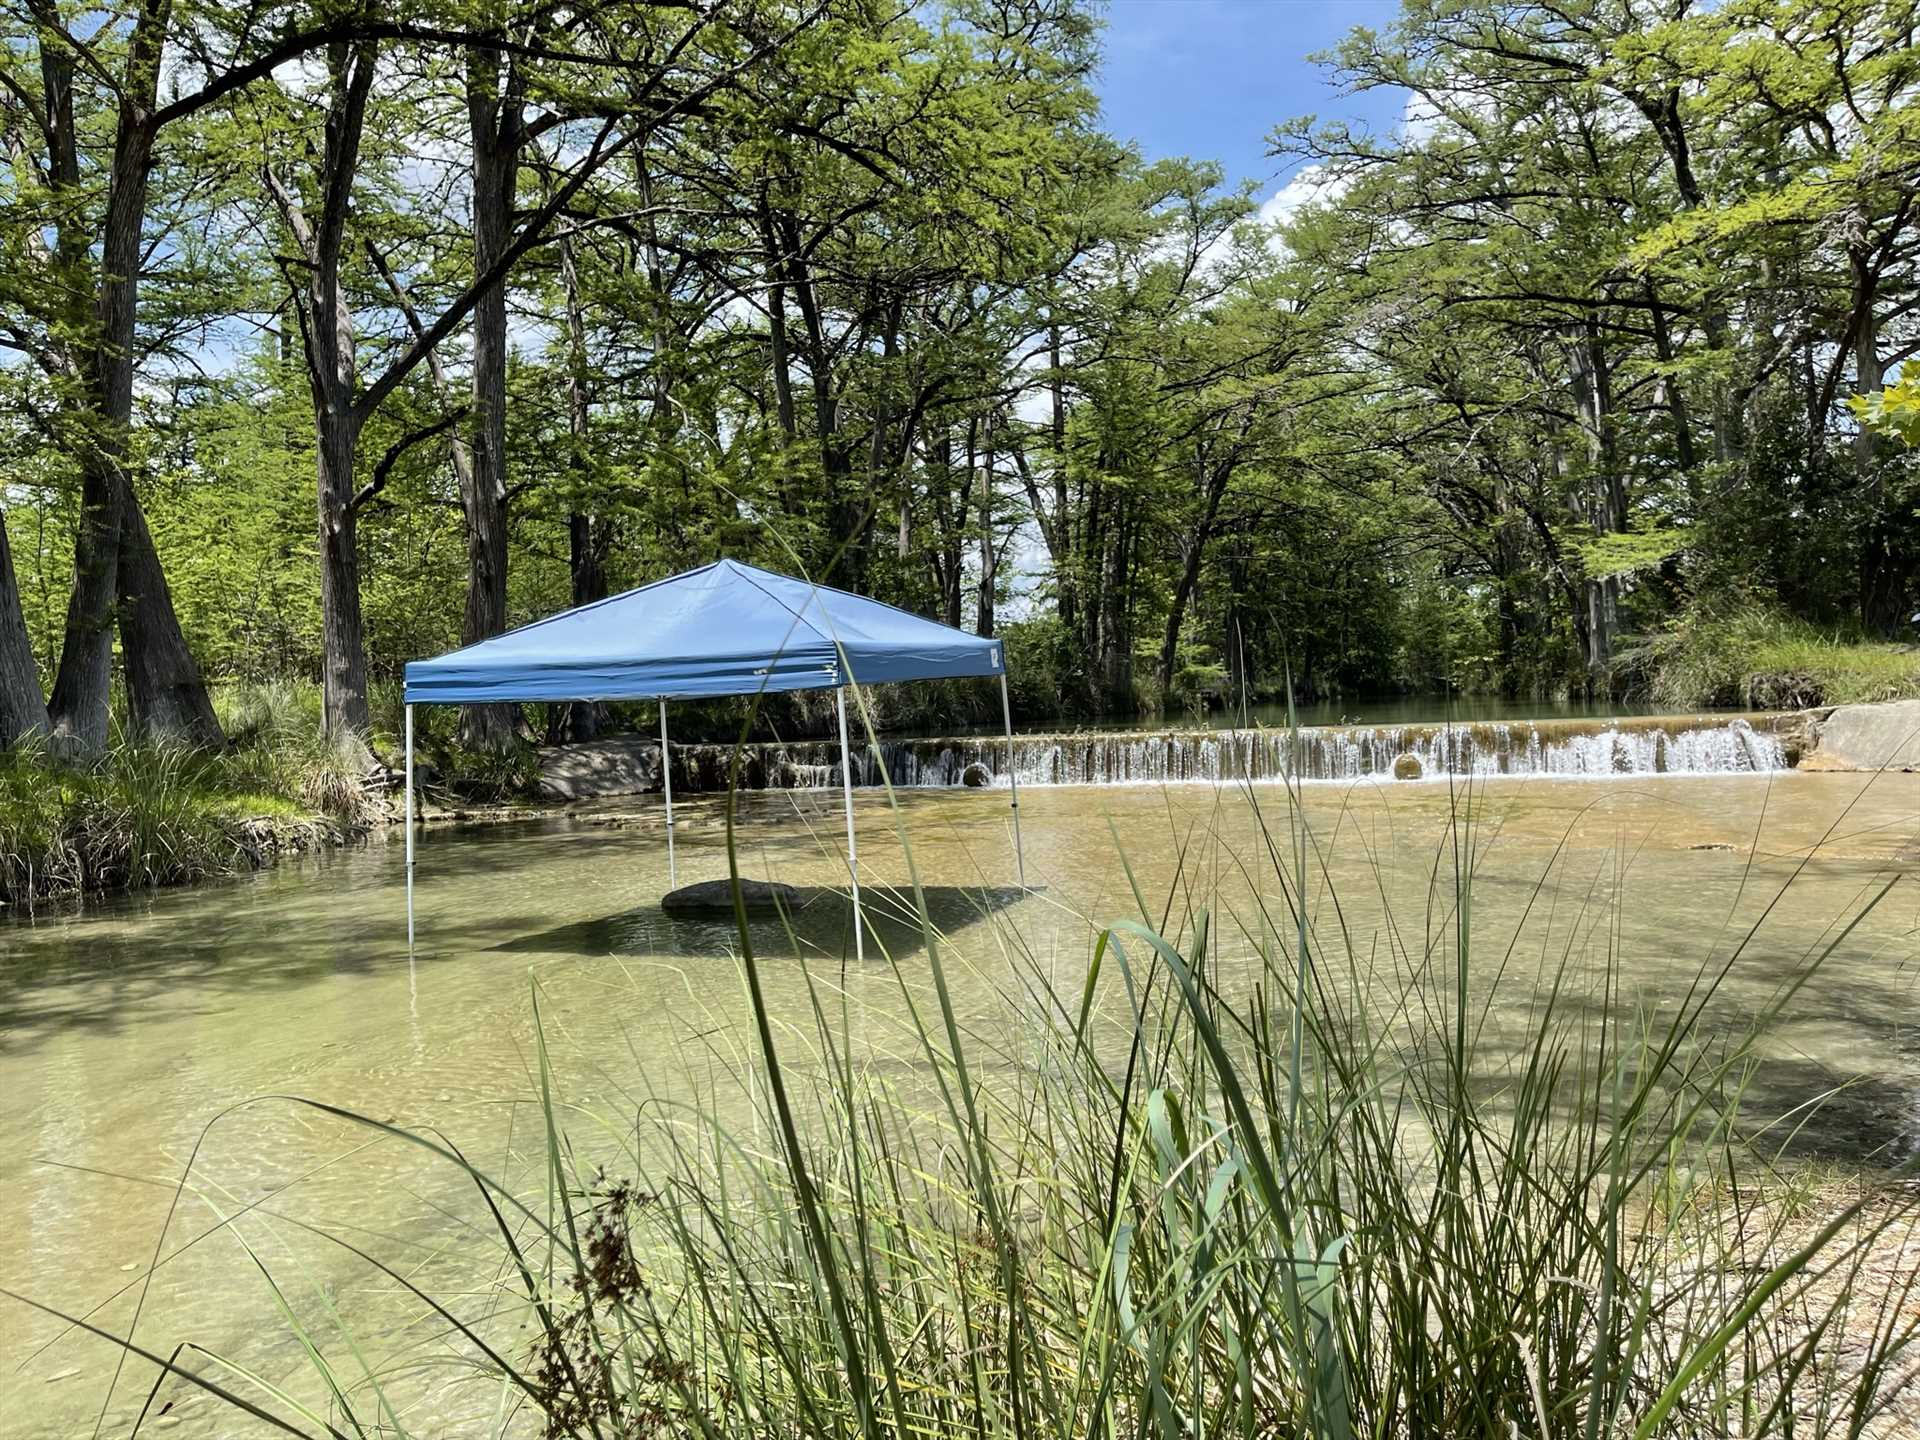 Want some shade, but don't want to get out of the water? The canopy here has you literally covered!